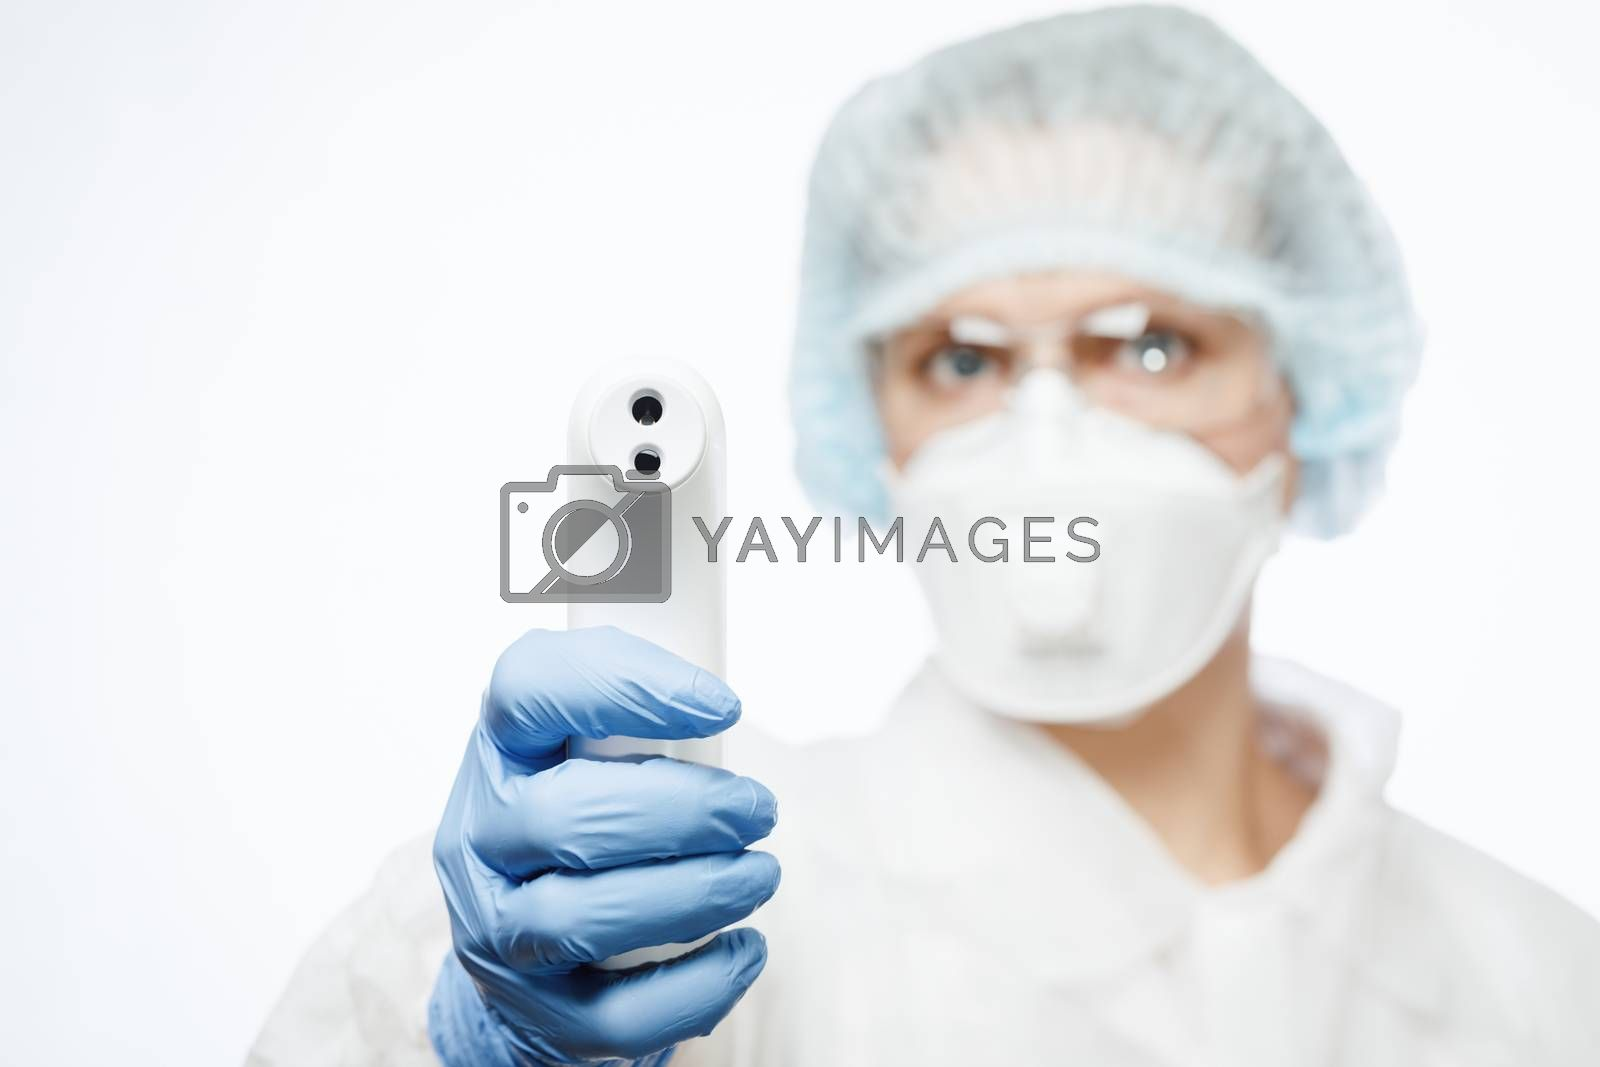 Close-up shot of doctor wearing PPE protective suit and surgical mask using infrared forehead thermometer or thermometer gun to check body temperature for virus symptoms - coronavirus outbreak concept